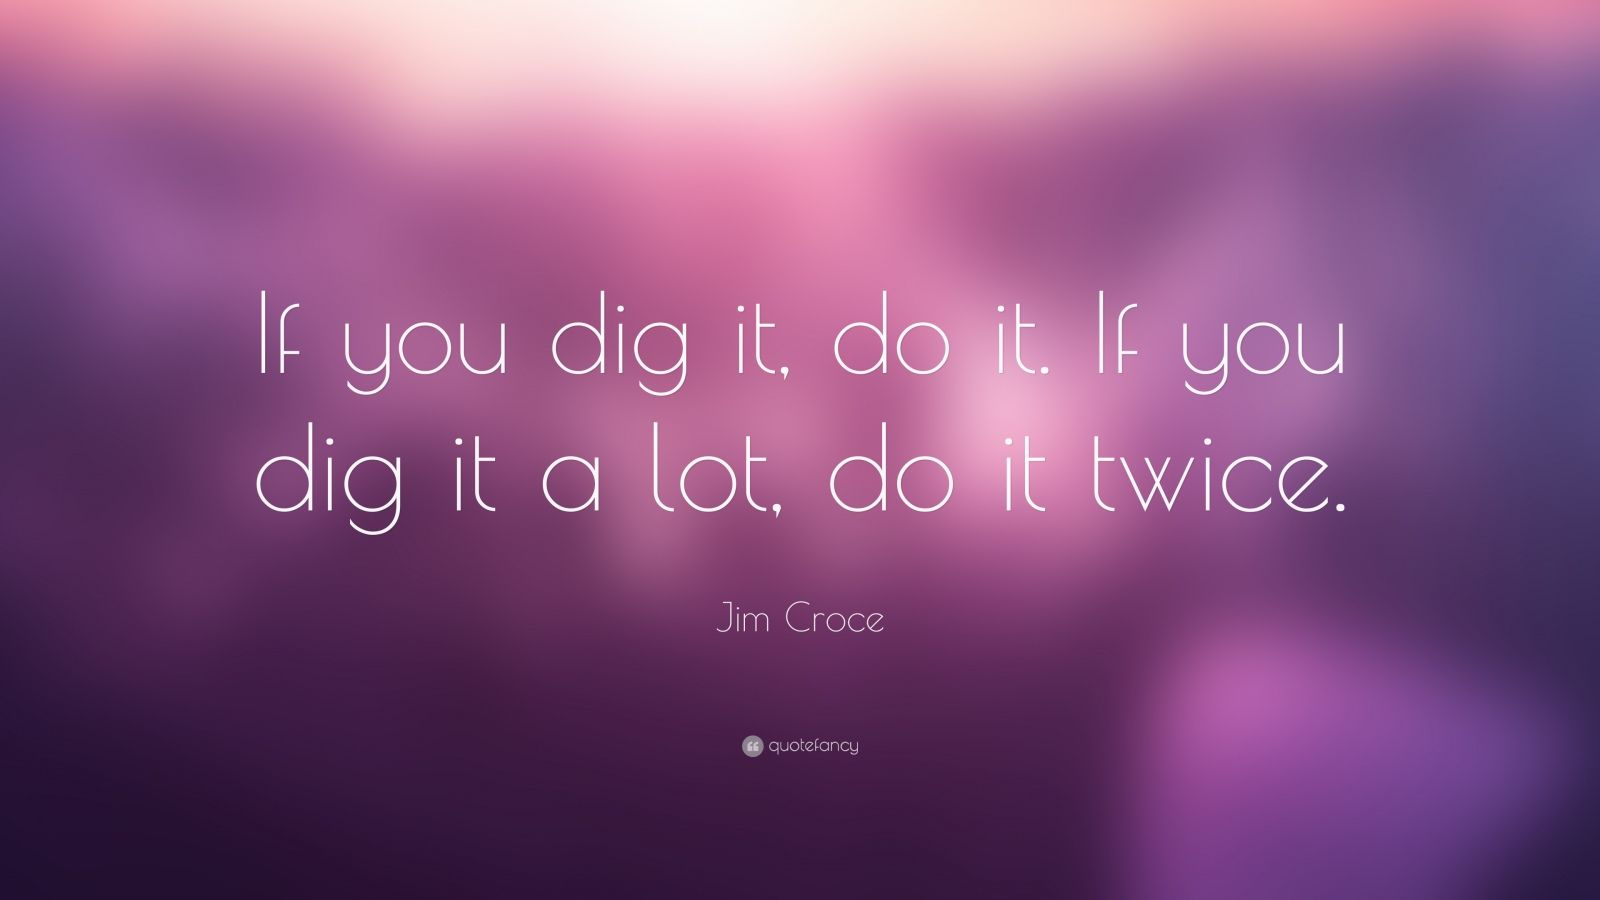 Jim Croce Quote If You Dig It Do It If You Dig It A